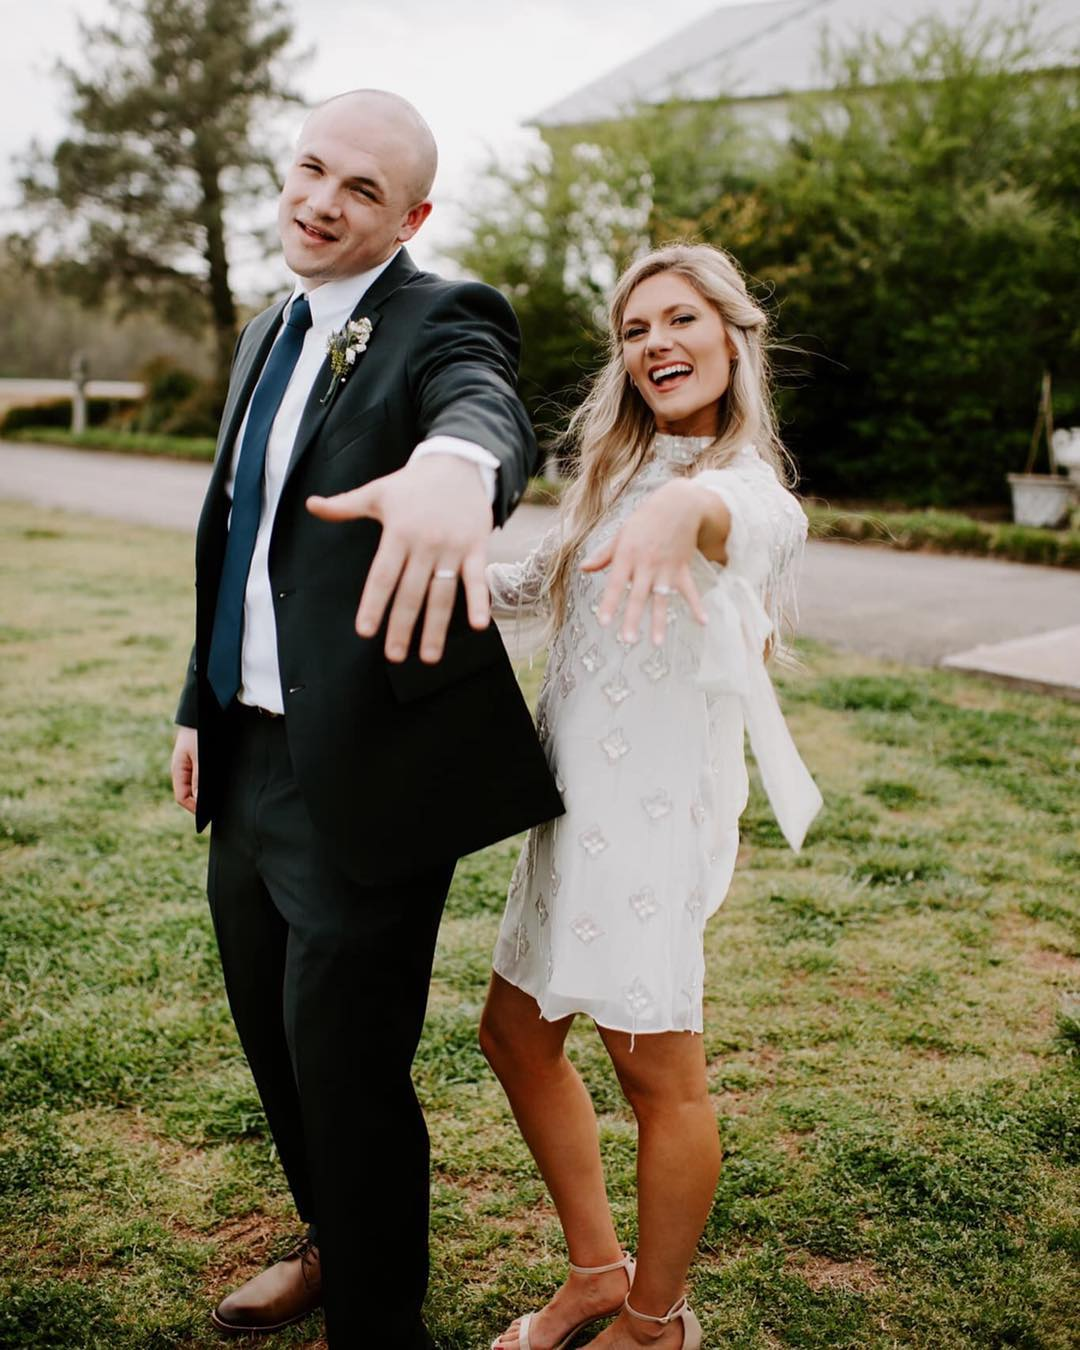 Drew got married! - Drew Mobley, who is our Data Coordinator on our USACE work at the corporate office got married on April 6th! Drew and his wife Whitney met in college at the University of North Alabama in Florence, AL. We are so excited for Drew and Whitney and love seeing our SSLLC families grow.